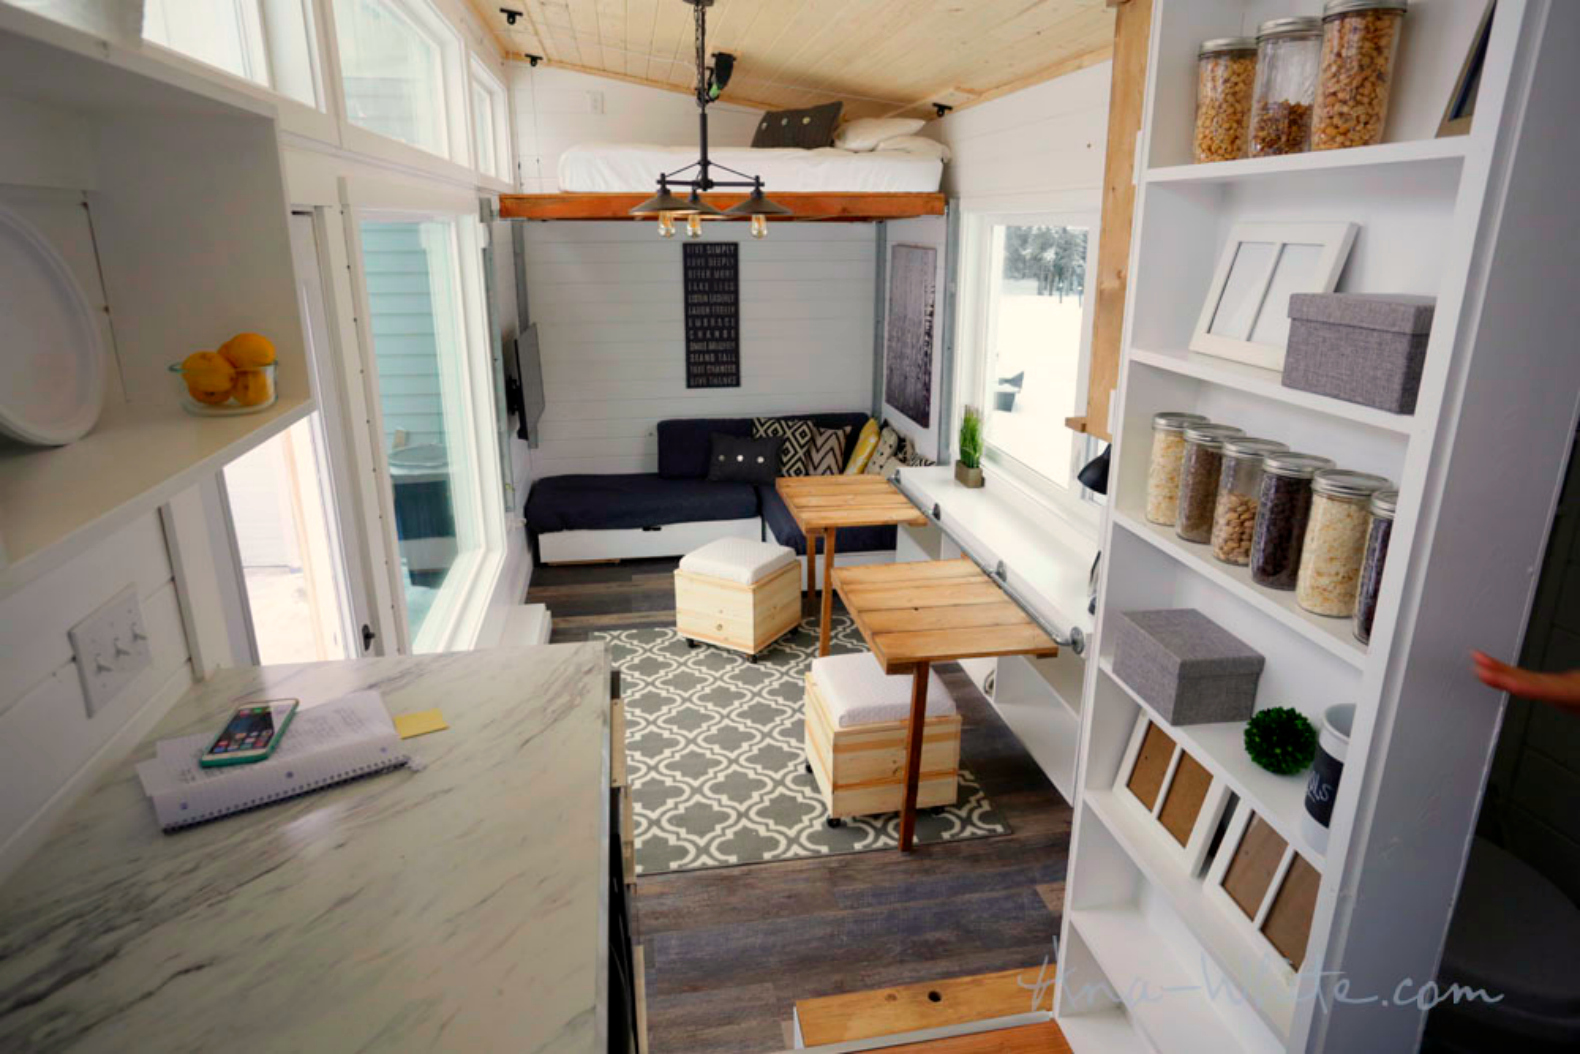 Genius elevator bed slides vertically on rails to maximize space in Alaskan  tiny home. Space Saving Furniture   Inhabitat   Green Design  Innovation